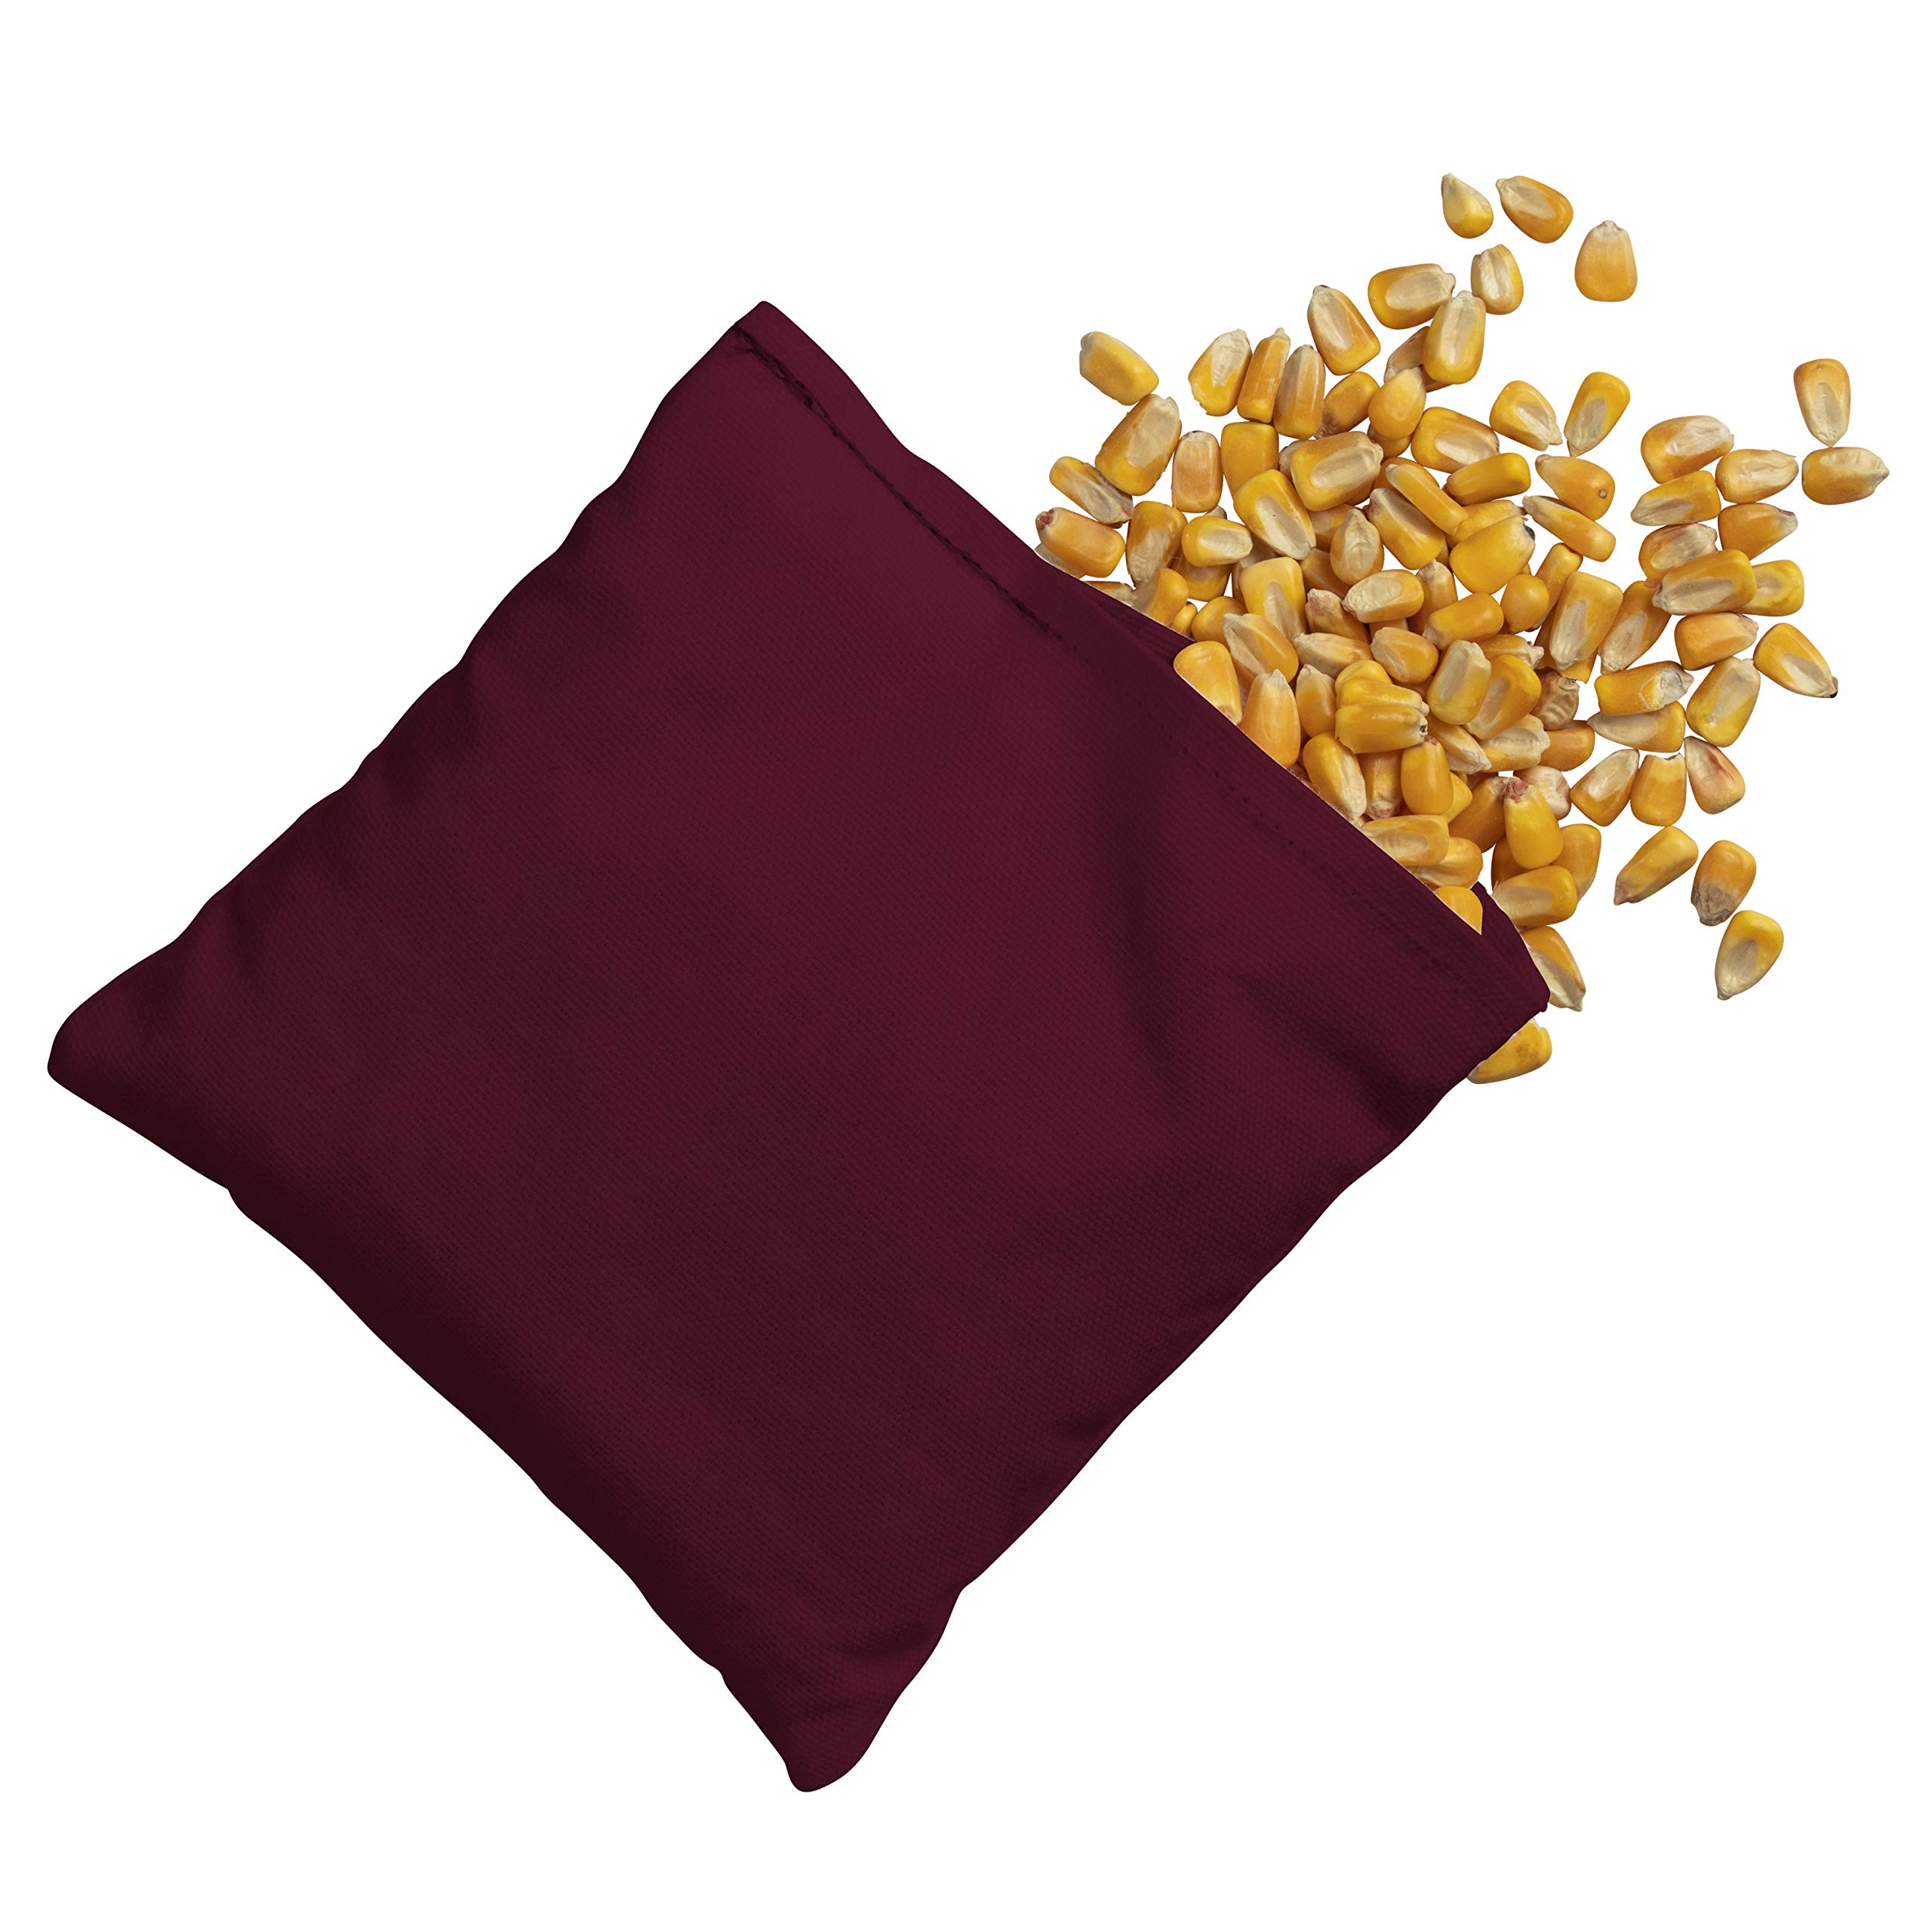 Victory Tailgate 8 Colored Corn Filled Regulation Cornhole Bags with Drawstring Pack (4 Burgundy, 4 White) by Victory Tailgate (Image #3)